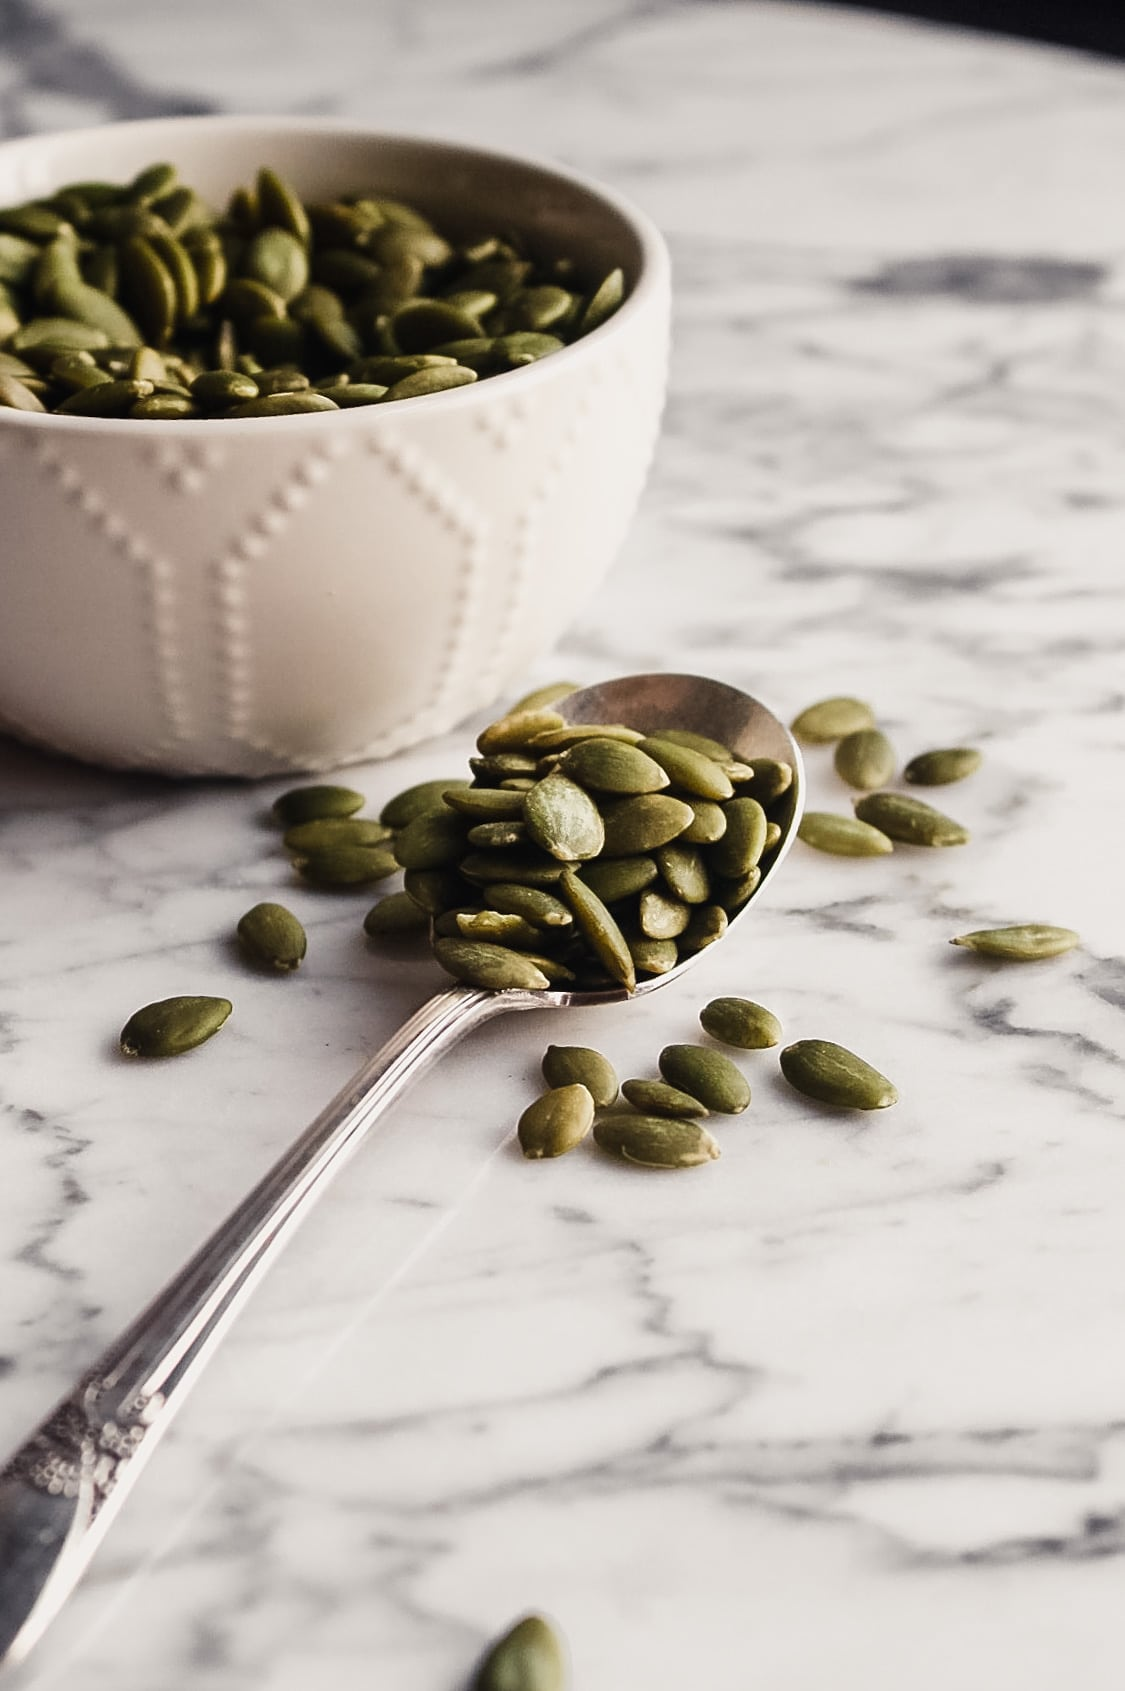 Photograph of pumpkin seeds in a white bowl and scooped into a spoon